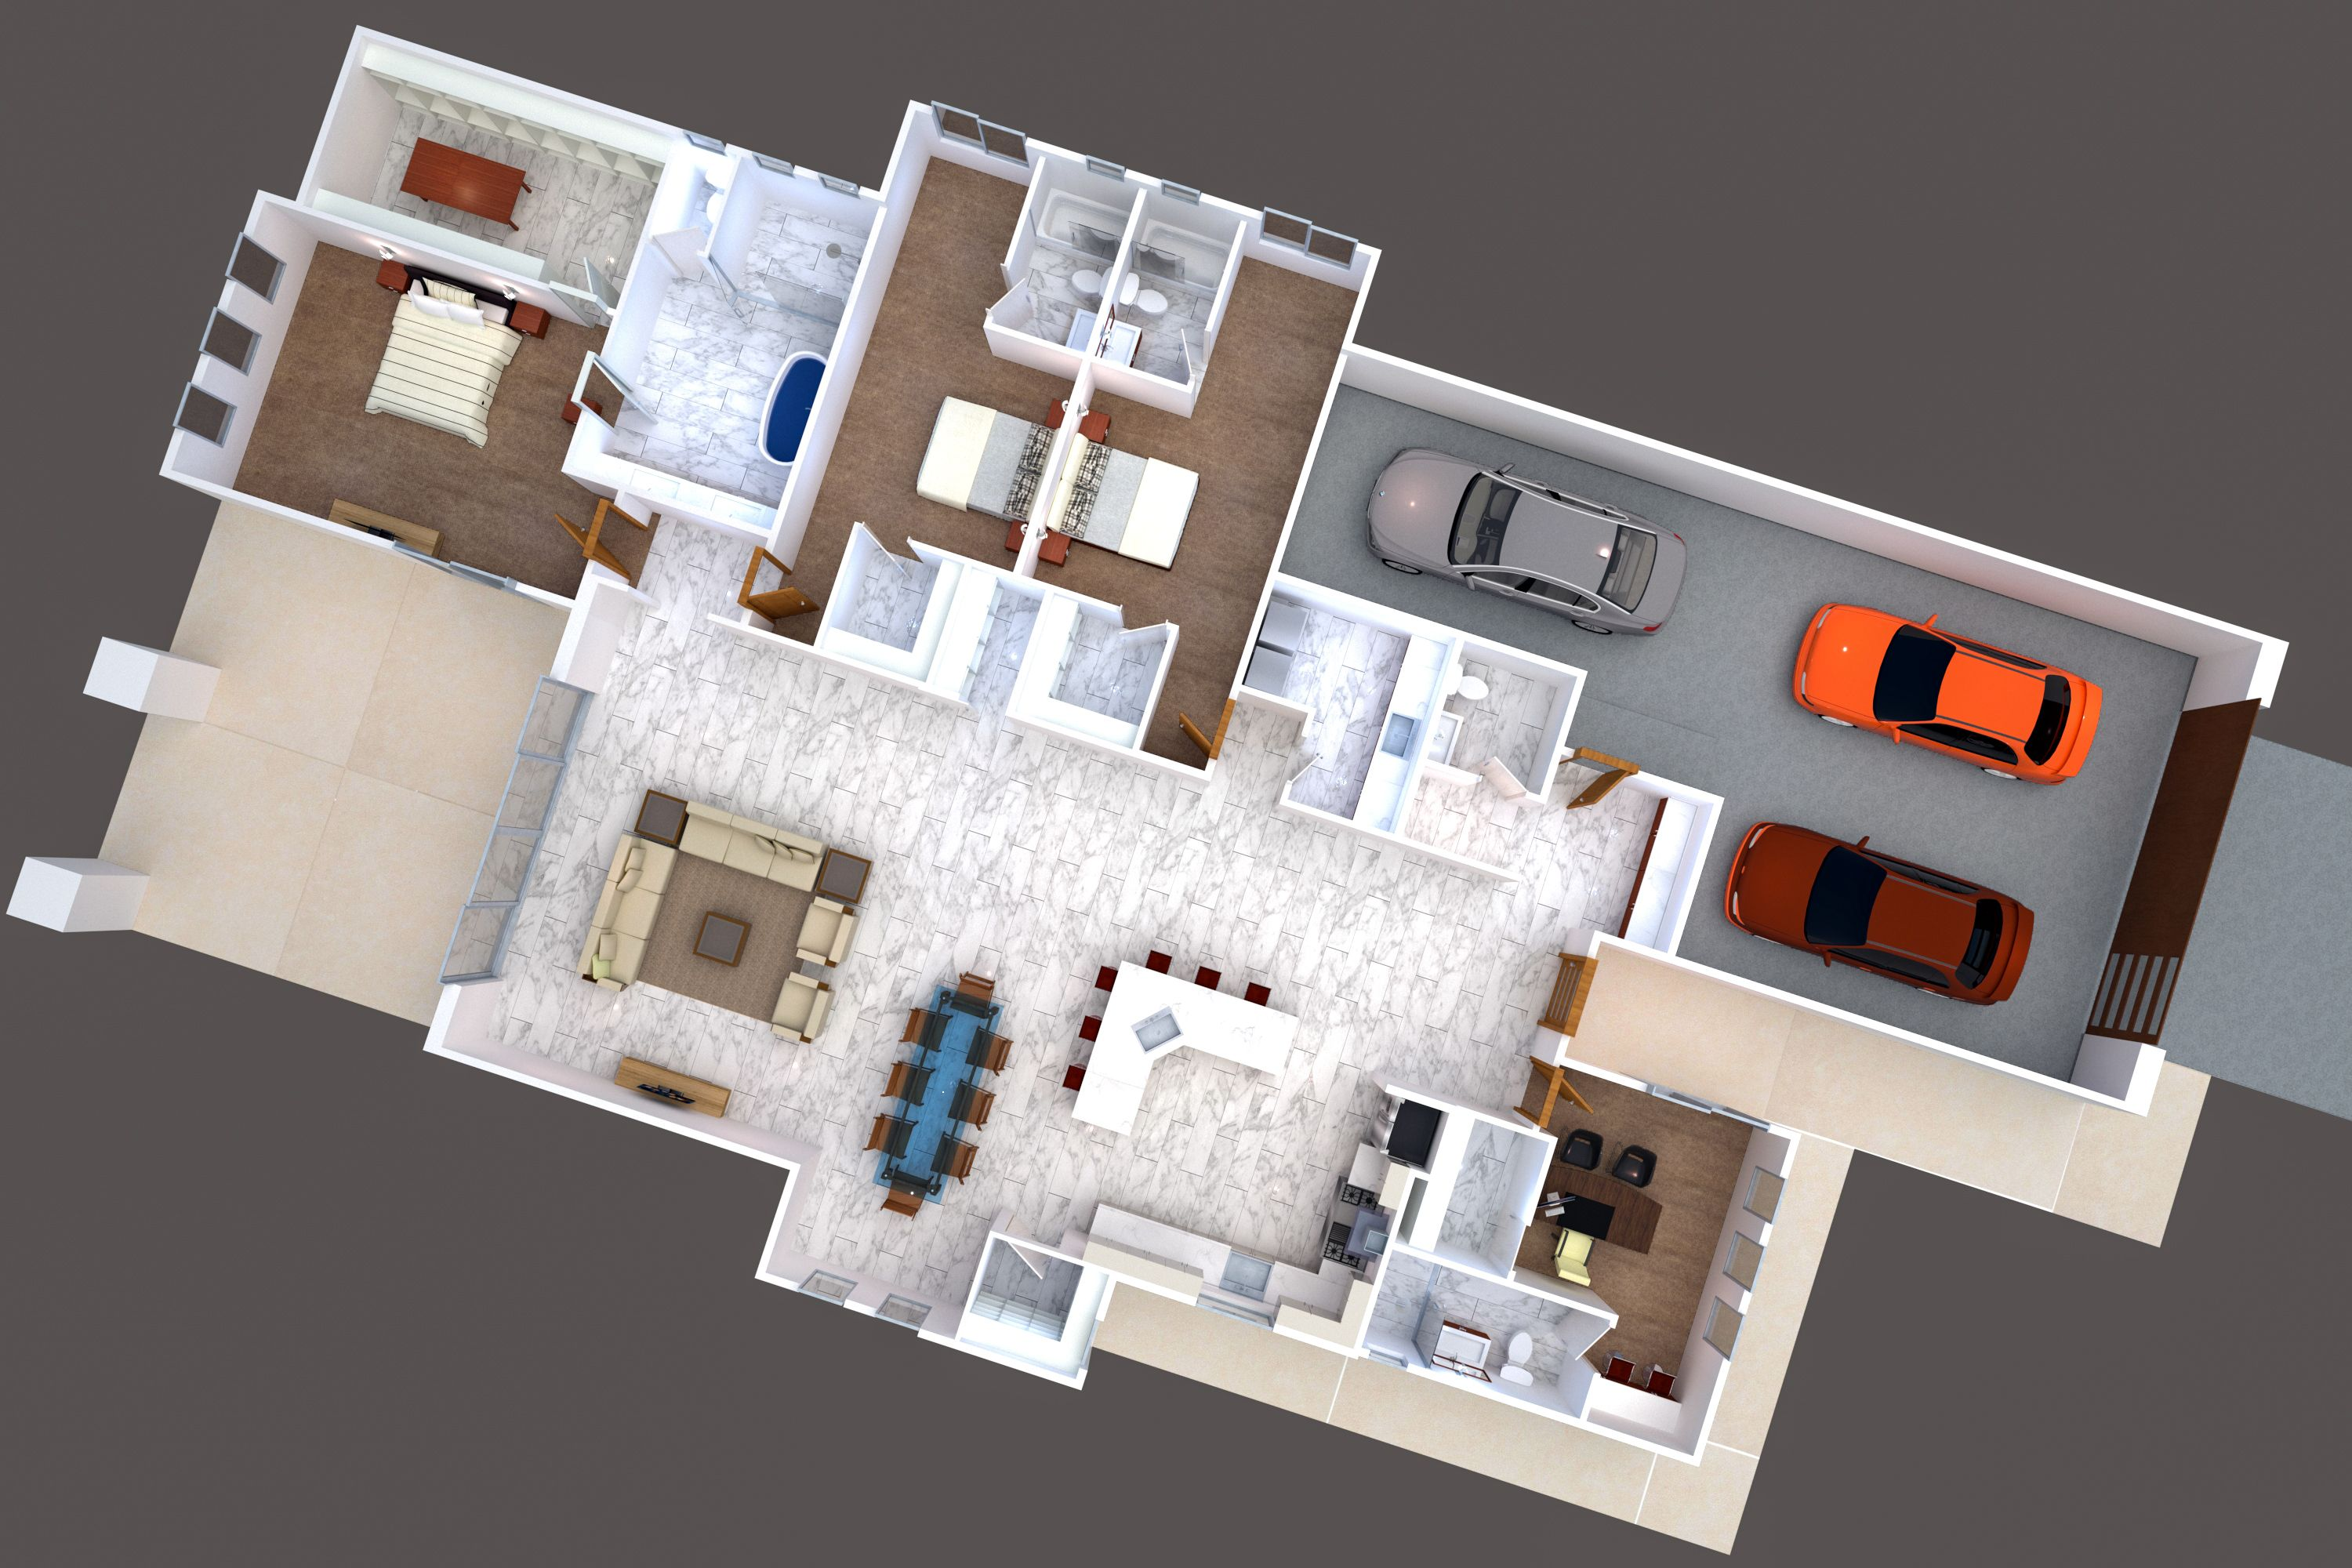 Stylearch I Will Create 3d Floor Plan And Interior Rendering By Sketchup For 20 On Fiverr Com Interior Rendering Architectural Floor Plans Interior Design Services